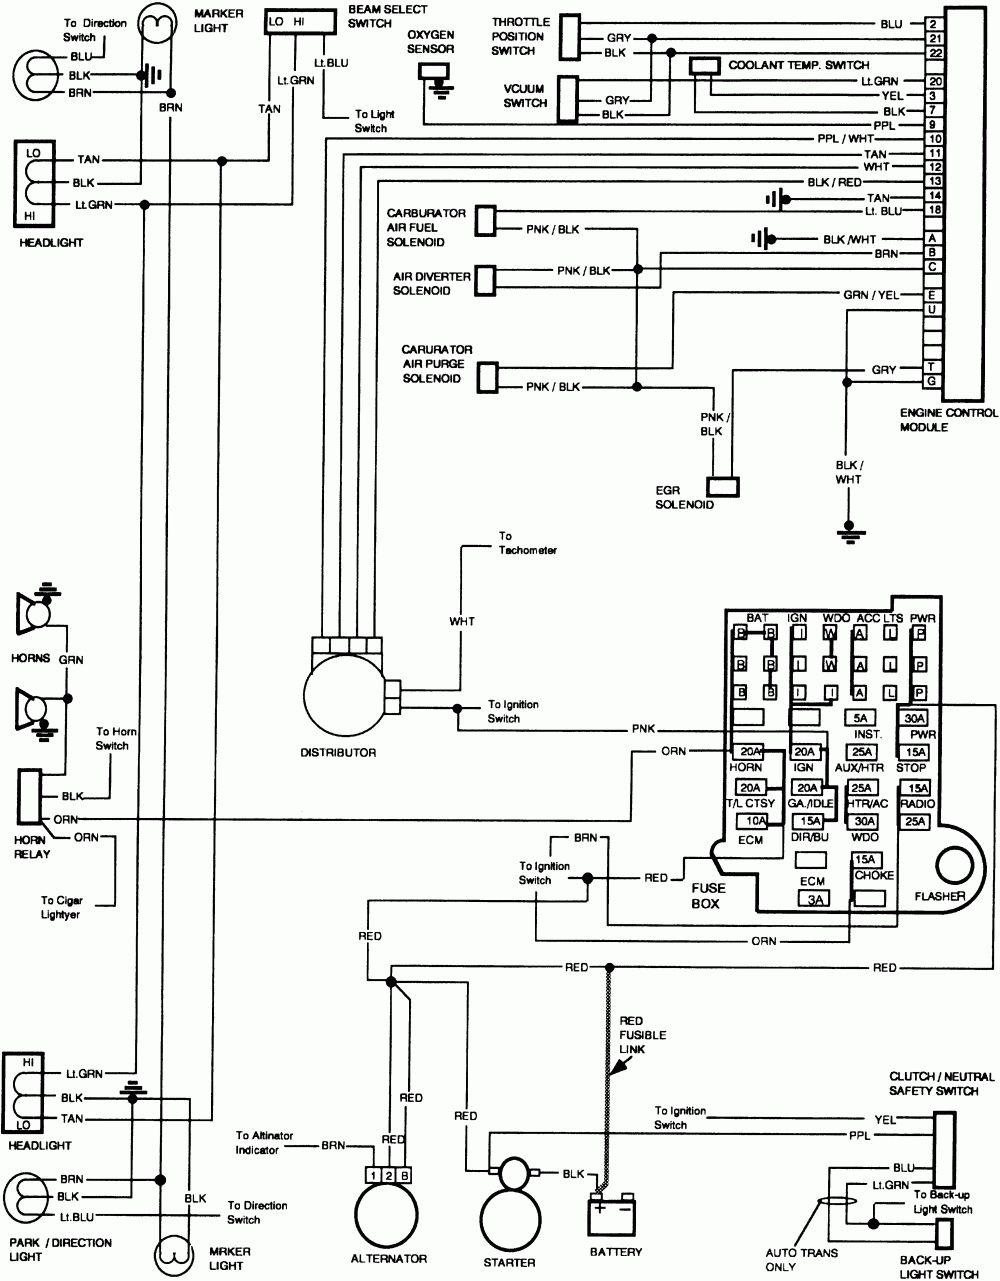 86 Chevy Truck Wiring Diagram Repair Guides Wiring Diagrams Wiring Diagrams  Autozone In 1986 Chevy Truck Wir… | 1985 chevy truck, 1986 chevy truck,  1979 chevy truckPinterest